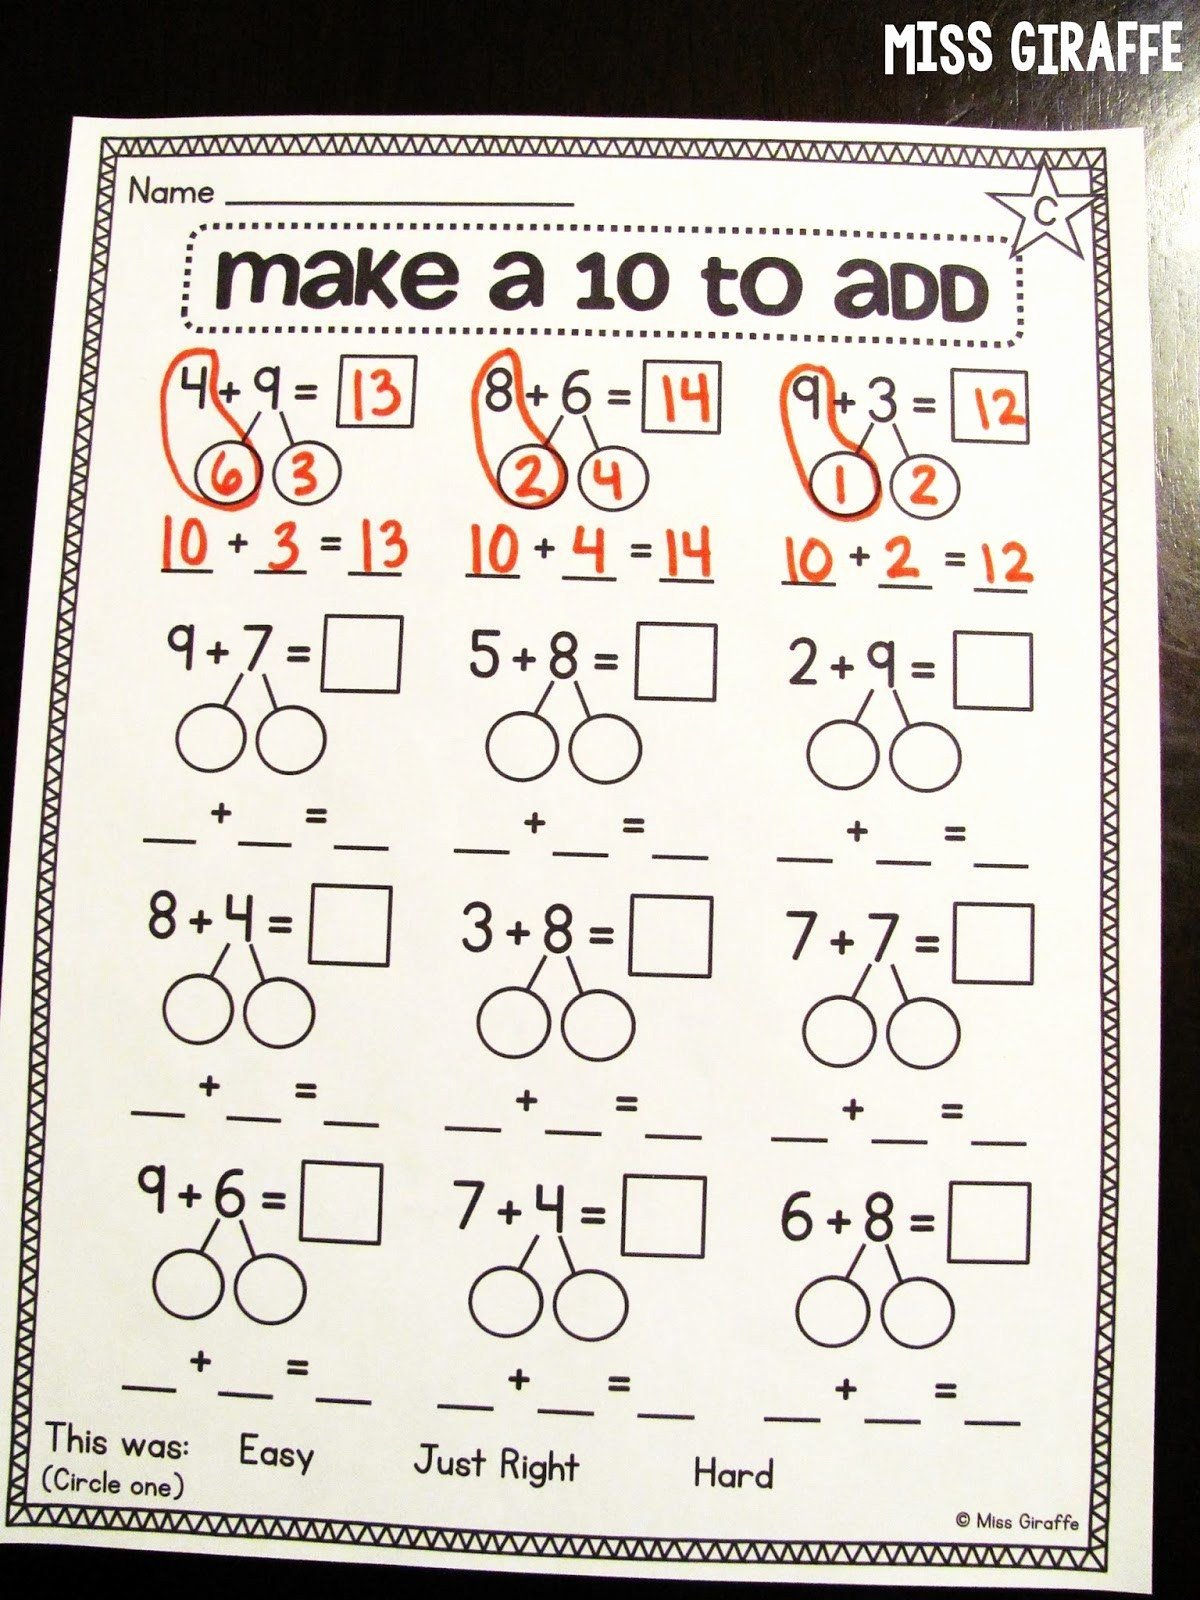 Composing and Decomposing Numbers Worksheet Kids De Posing Numbers Worksheet 3rd Grade Miss Giraffe S Class